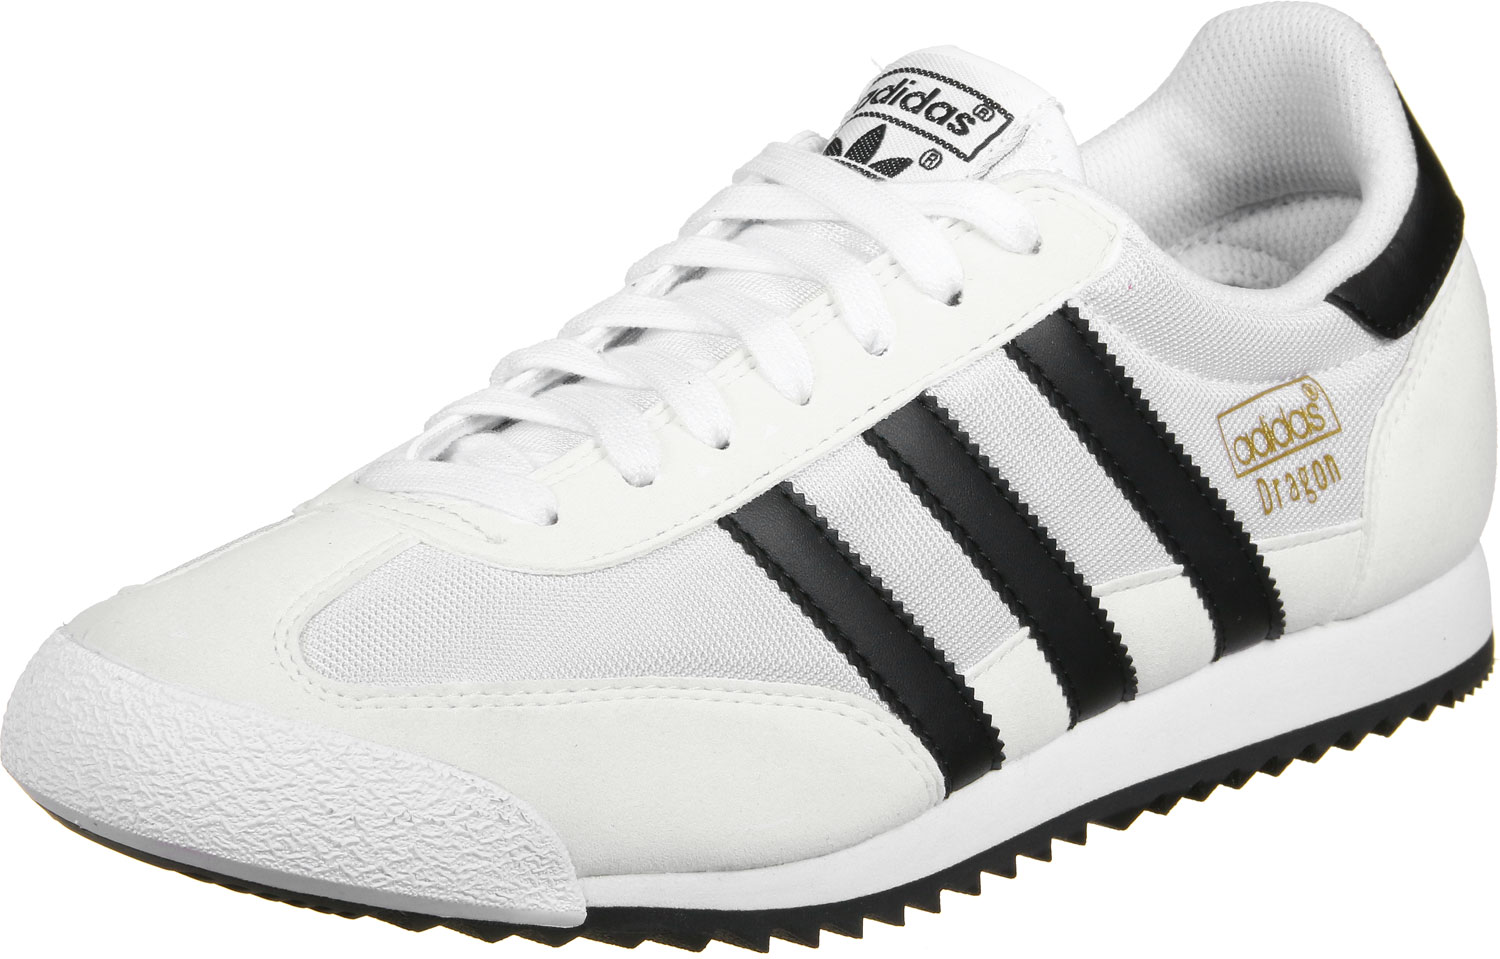 adidas dragon shoes adidas dragon og shoes white black RUCMLAP